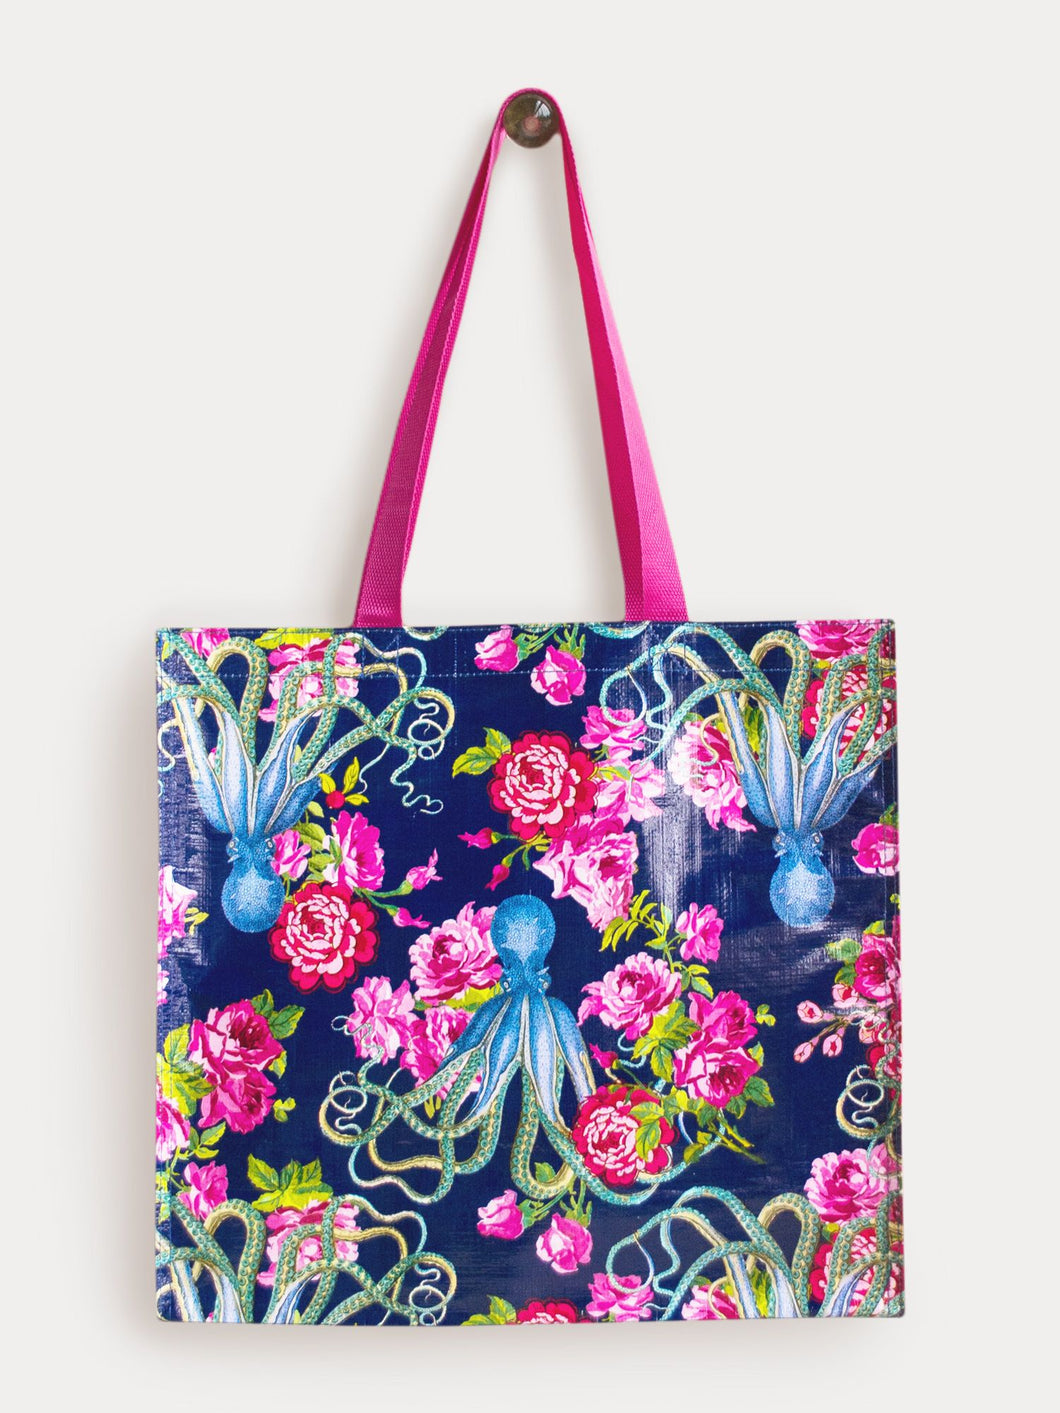 20,000 Flowers Under the Sea Market Tote